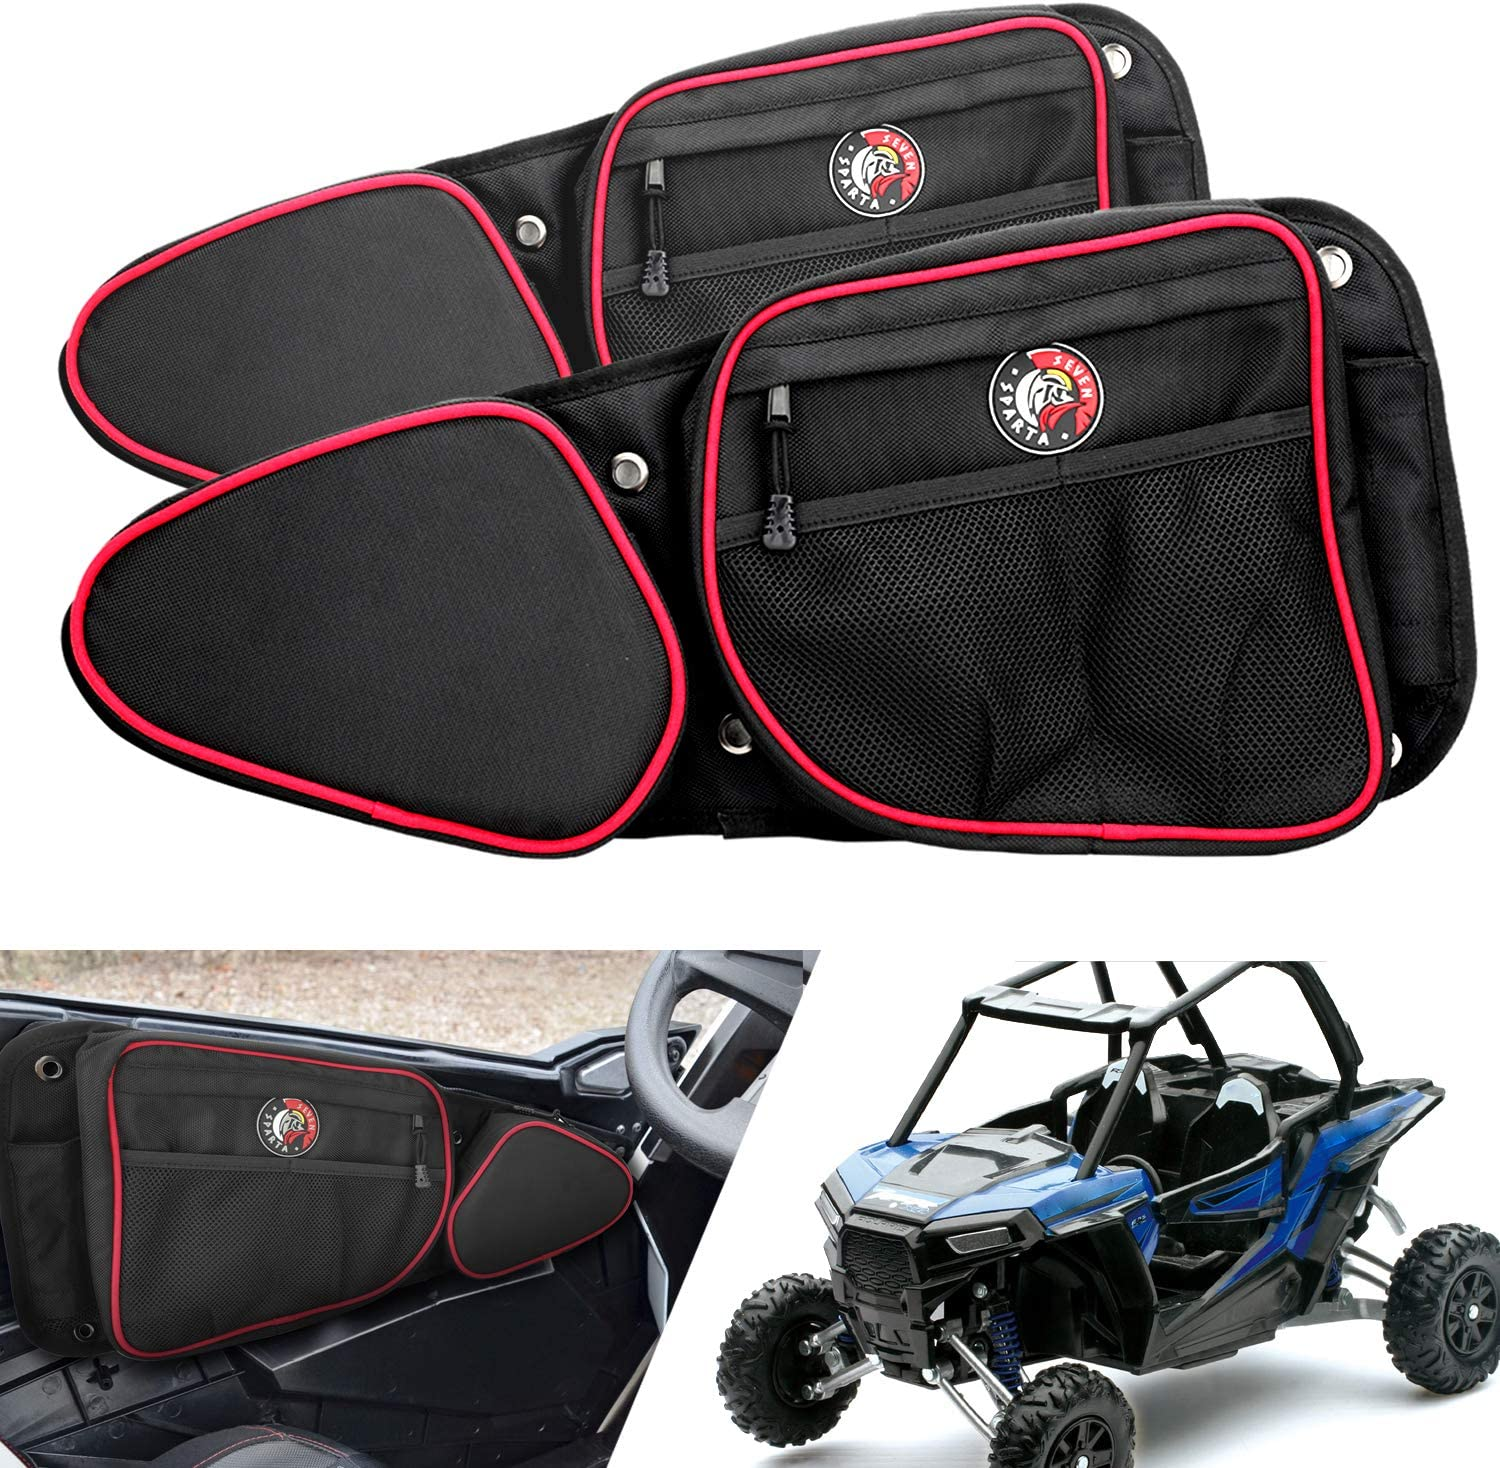 60 Wide Models Including 2014-2019 RZR XP4 1000 2015-2019 RZR 900 Doors Side Storage Bags with Knee Protection Pad for RZR Turbo Seven Sparta Door Bags for Polaris RZR 2014-2019 XP1000,RZR Turbo